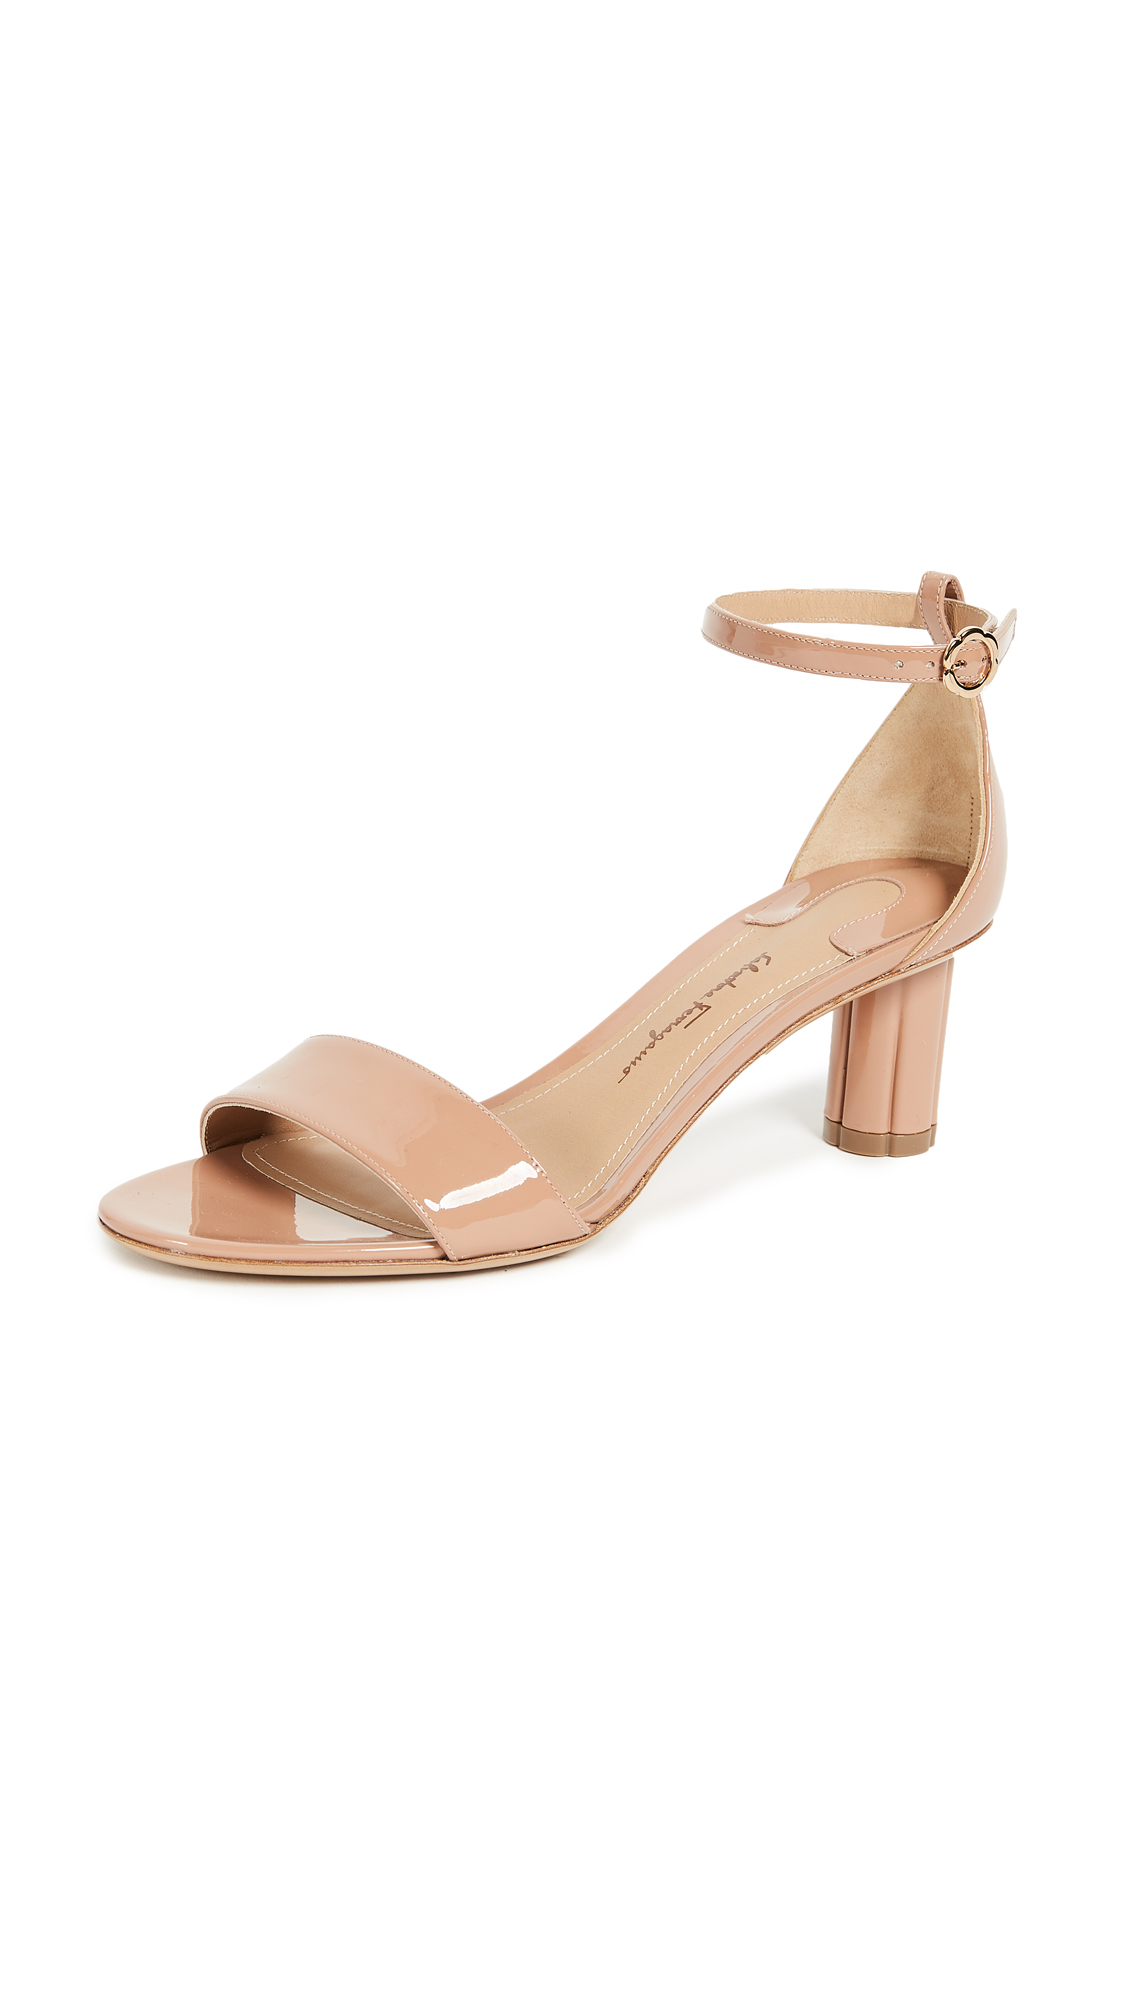 Salvatore Ferragamo Tursi Wrap Sandals - New Blush